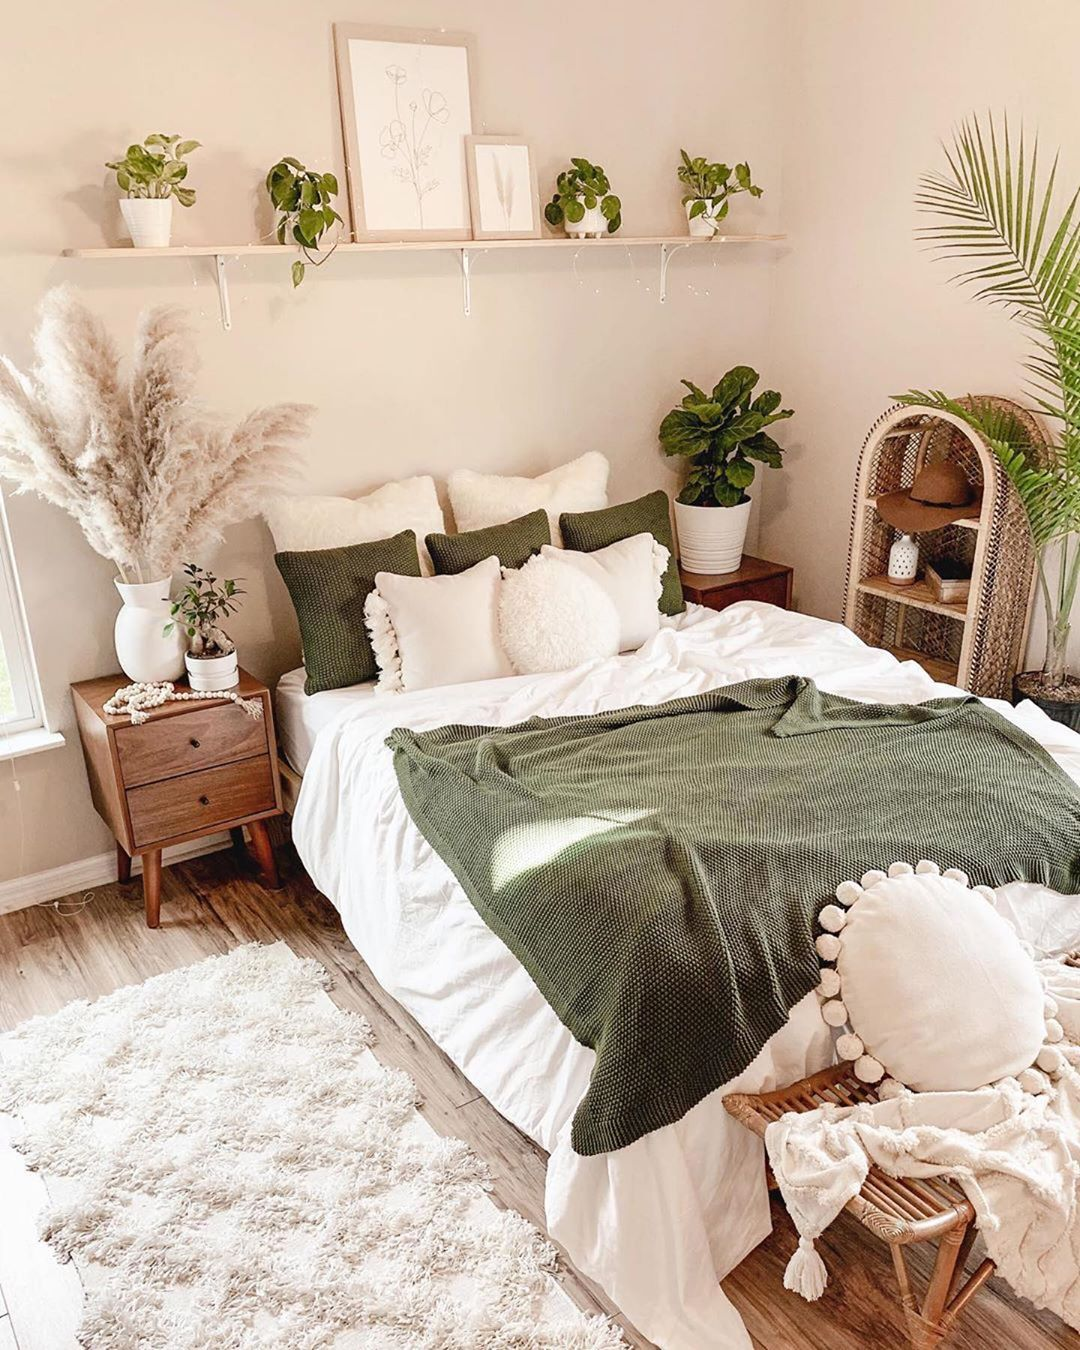 You can't go wrong with bringing greenery into your home @rachelkathleen13 🌱🤩🤩. Click the image to try our free home design app.  (Keywords: bedroom ideas, bedroom decor, master bedroom ideas, boho bedroom, dream rooms, DIY home decor, small bedroom ideas, bedroom rug, aesthetic bedroom, bedroom wall art, apartment bedroom decor)